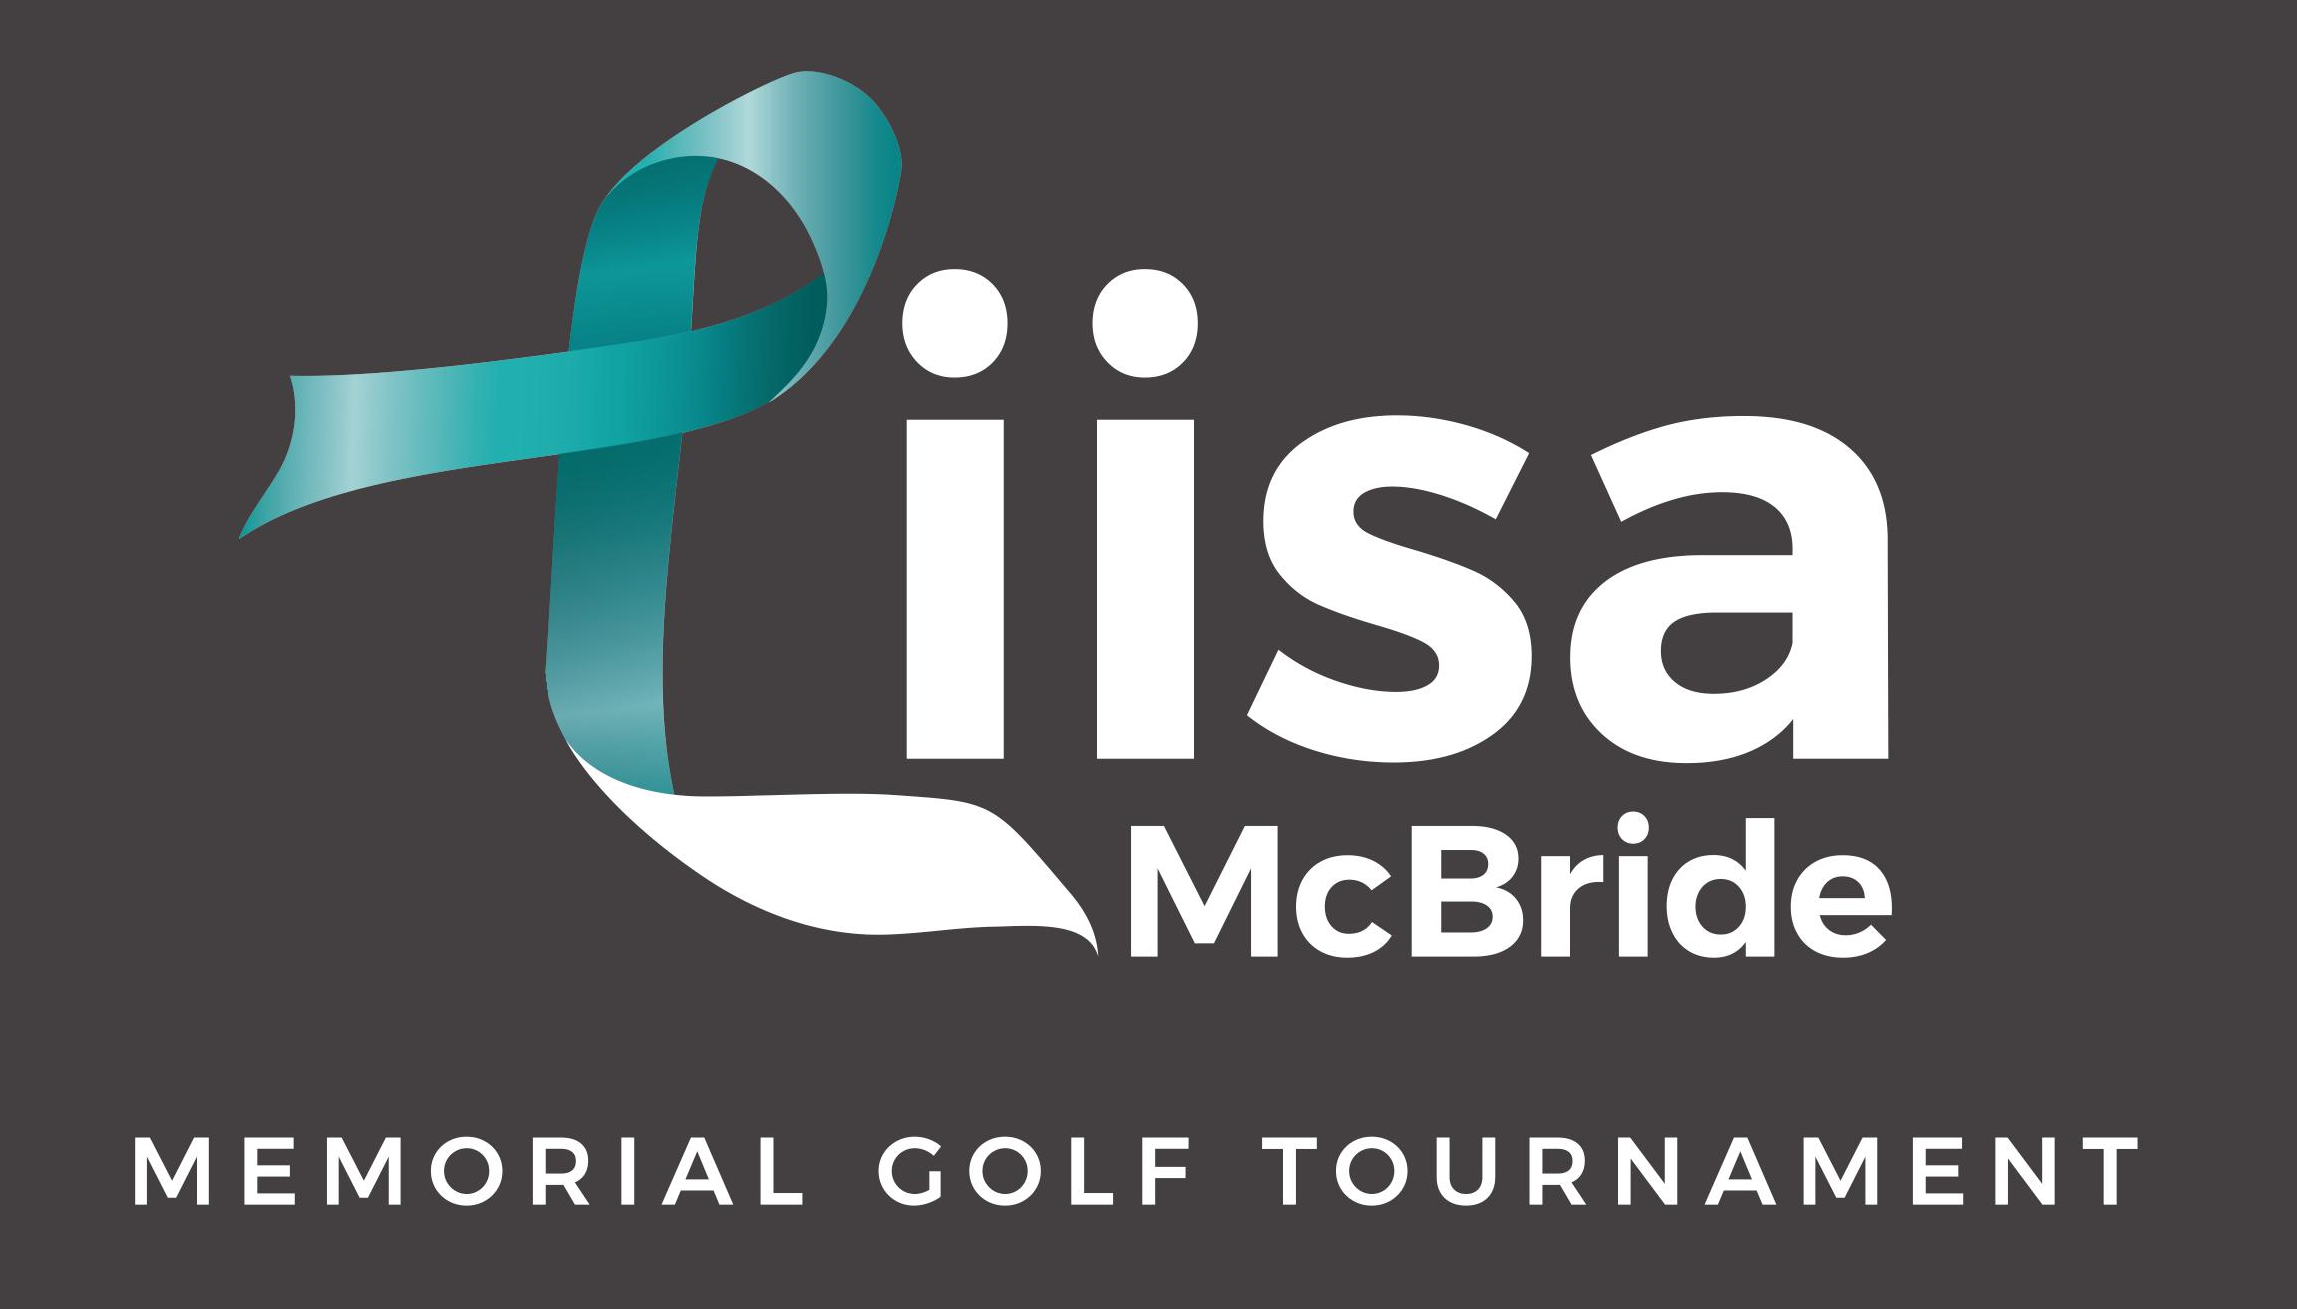 Liisa McBride Memorial Golf Tournament logo